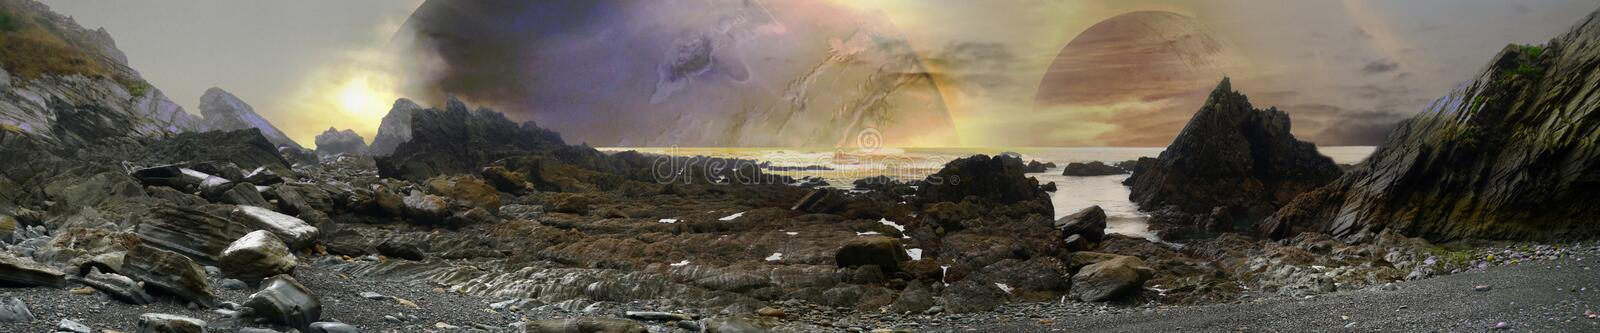 Alien landscape with planets and rocky beach stock image